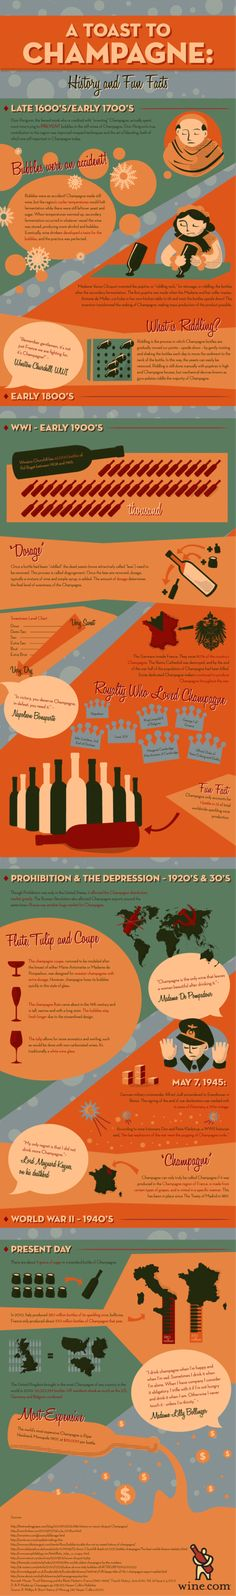 A Toast to Champagne: History an Fun Facts #Infographic